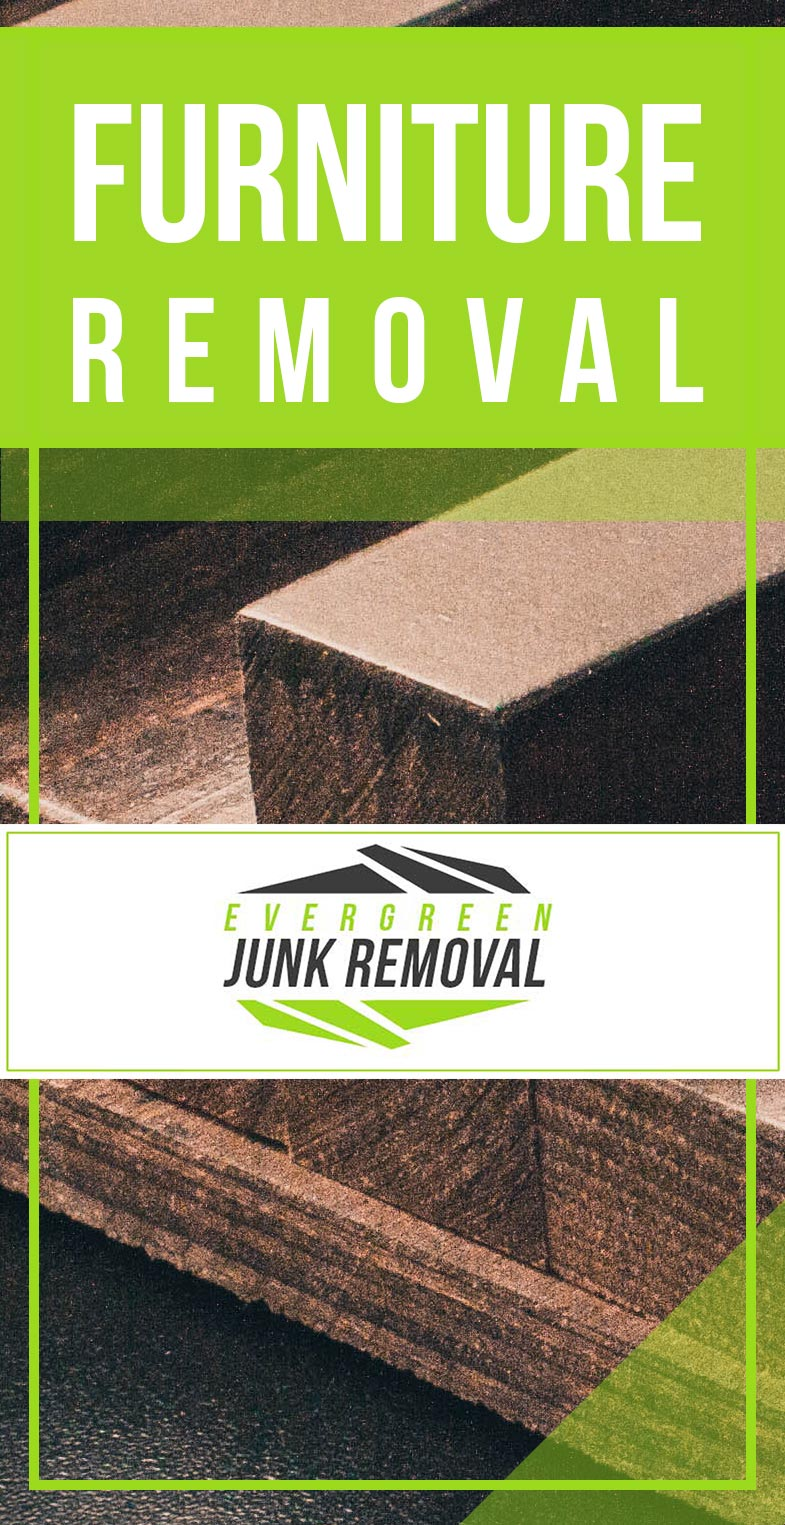 Junk Removal Hallandale Beach Furniture Removal